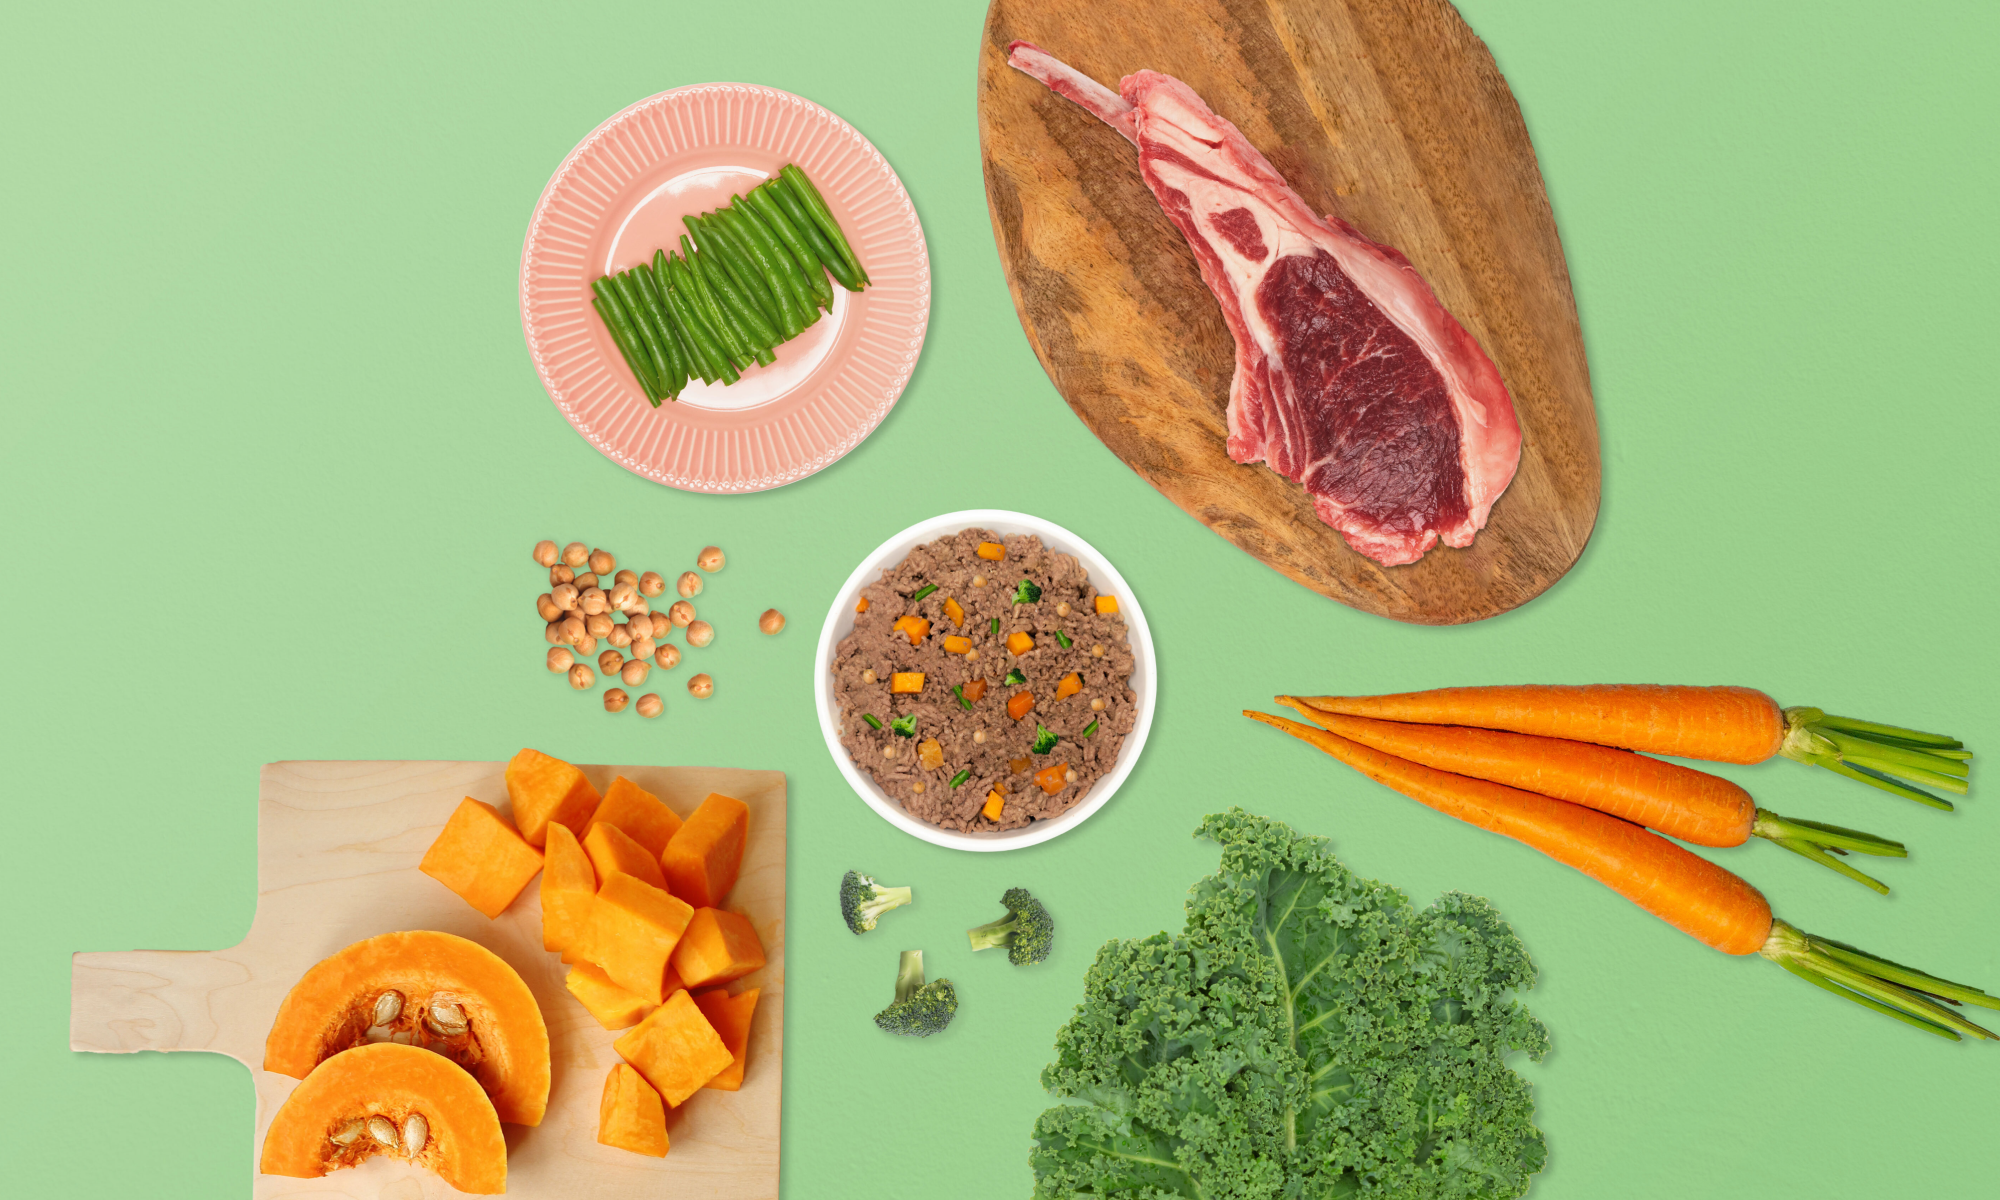 Food spread of raw beef, carrots, kale, chickpeas, green beans, broccoli and bowl of Kabo beef meal